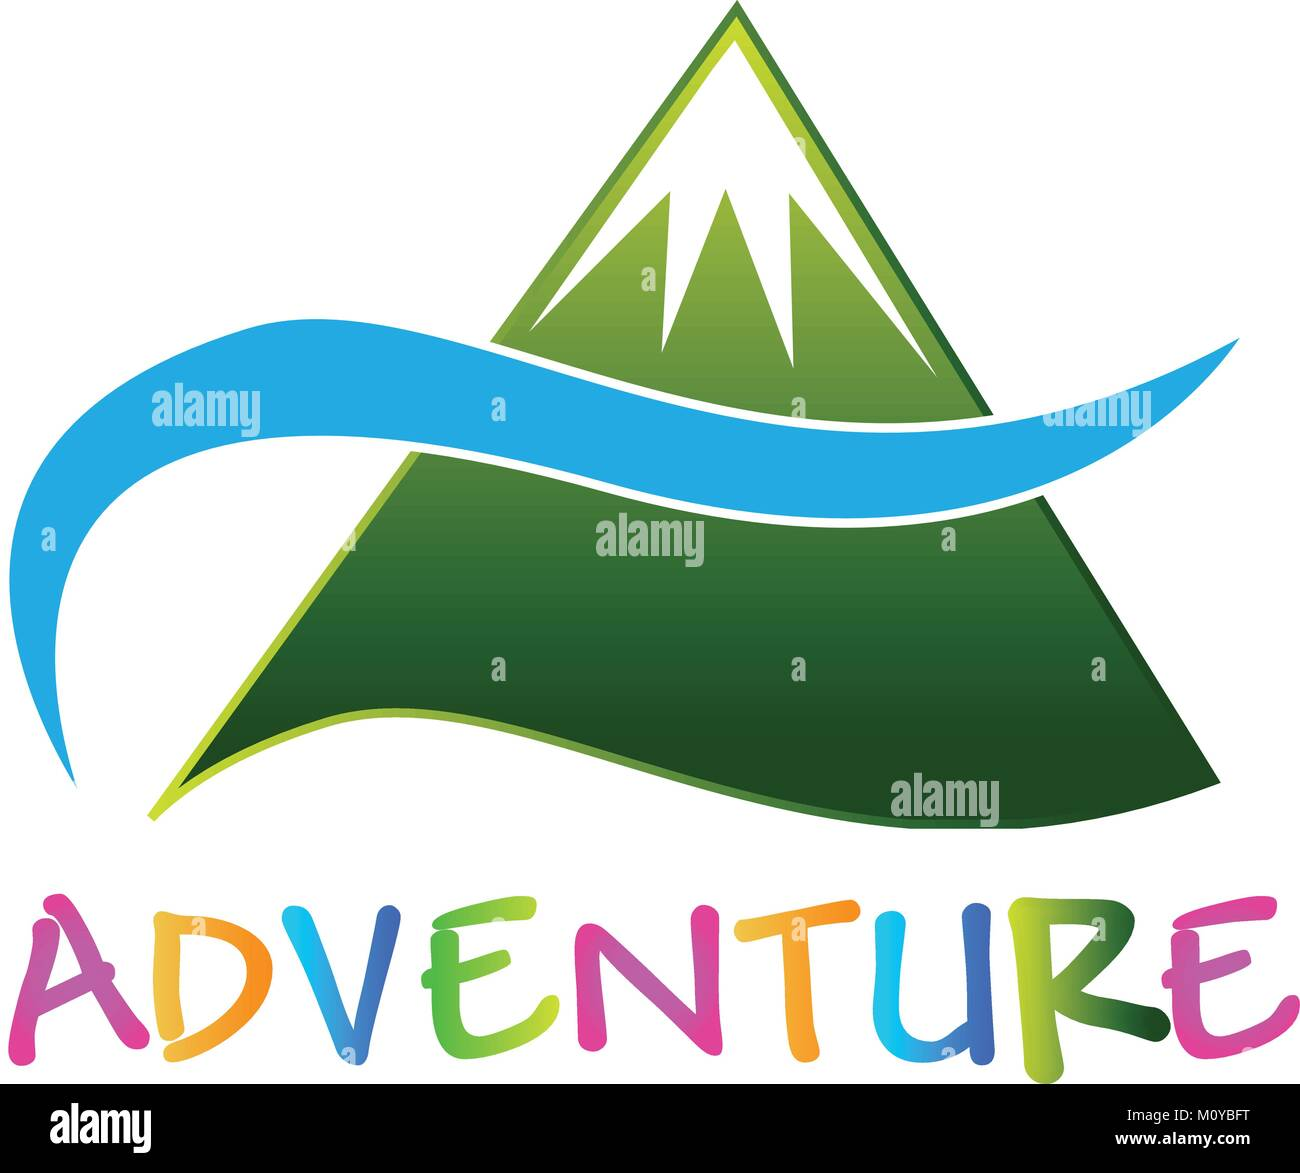 Adventure green mountain logo vector image - Stock Vector